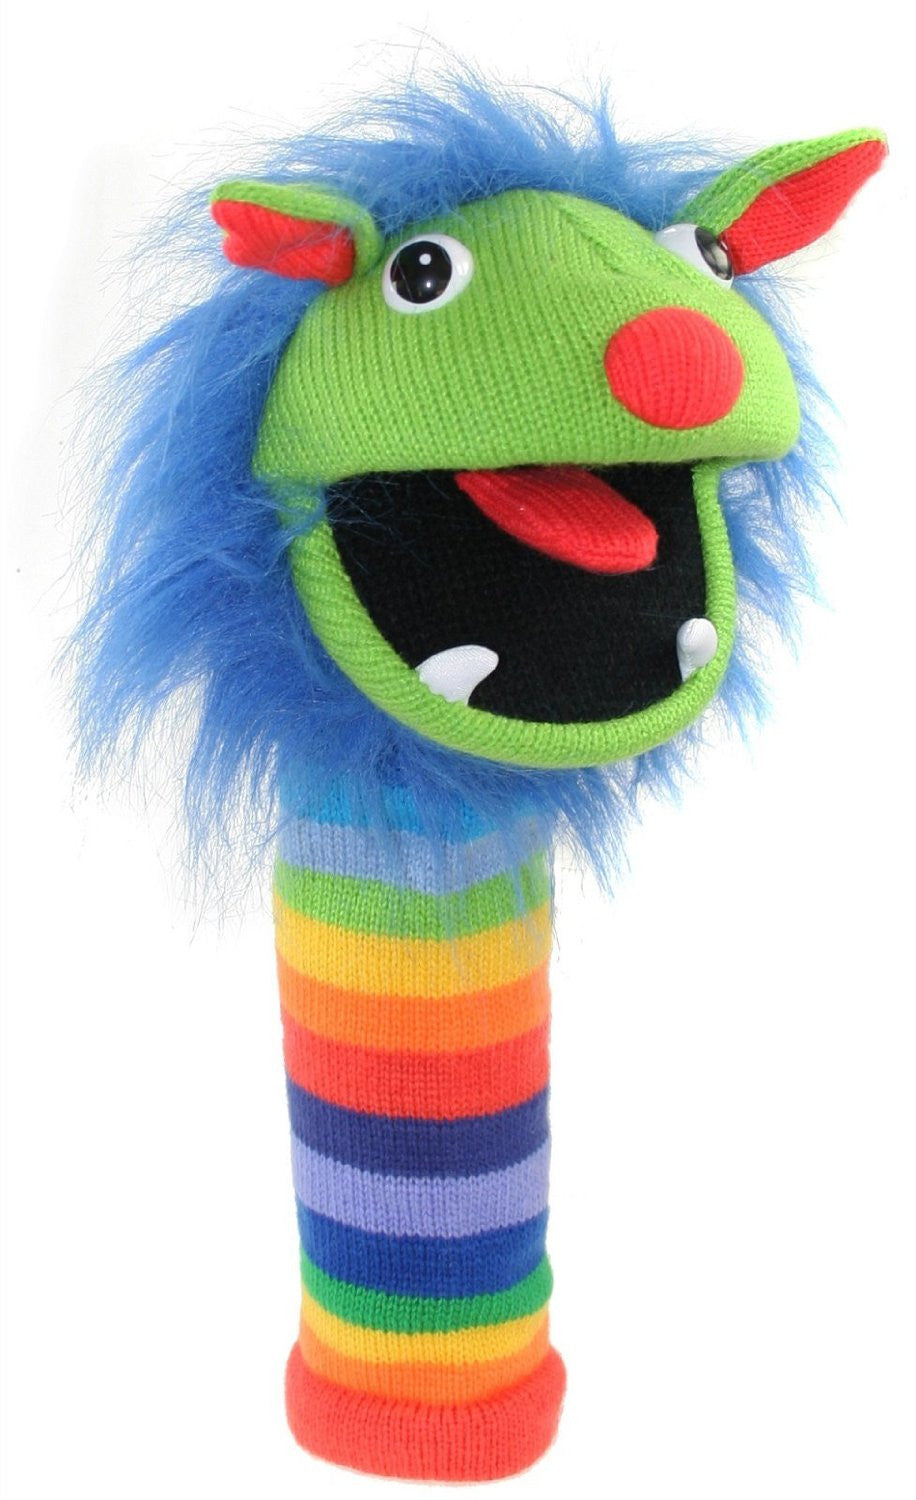 Mini Rainbow Knitted Finger Puppet by The Puppet Company - Off The Wall Toys and Gifts